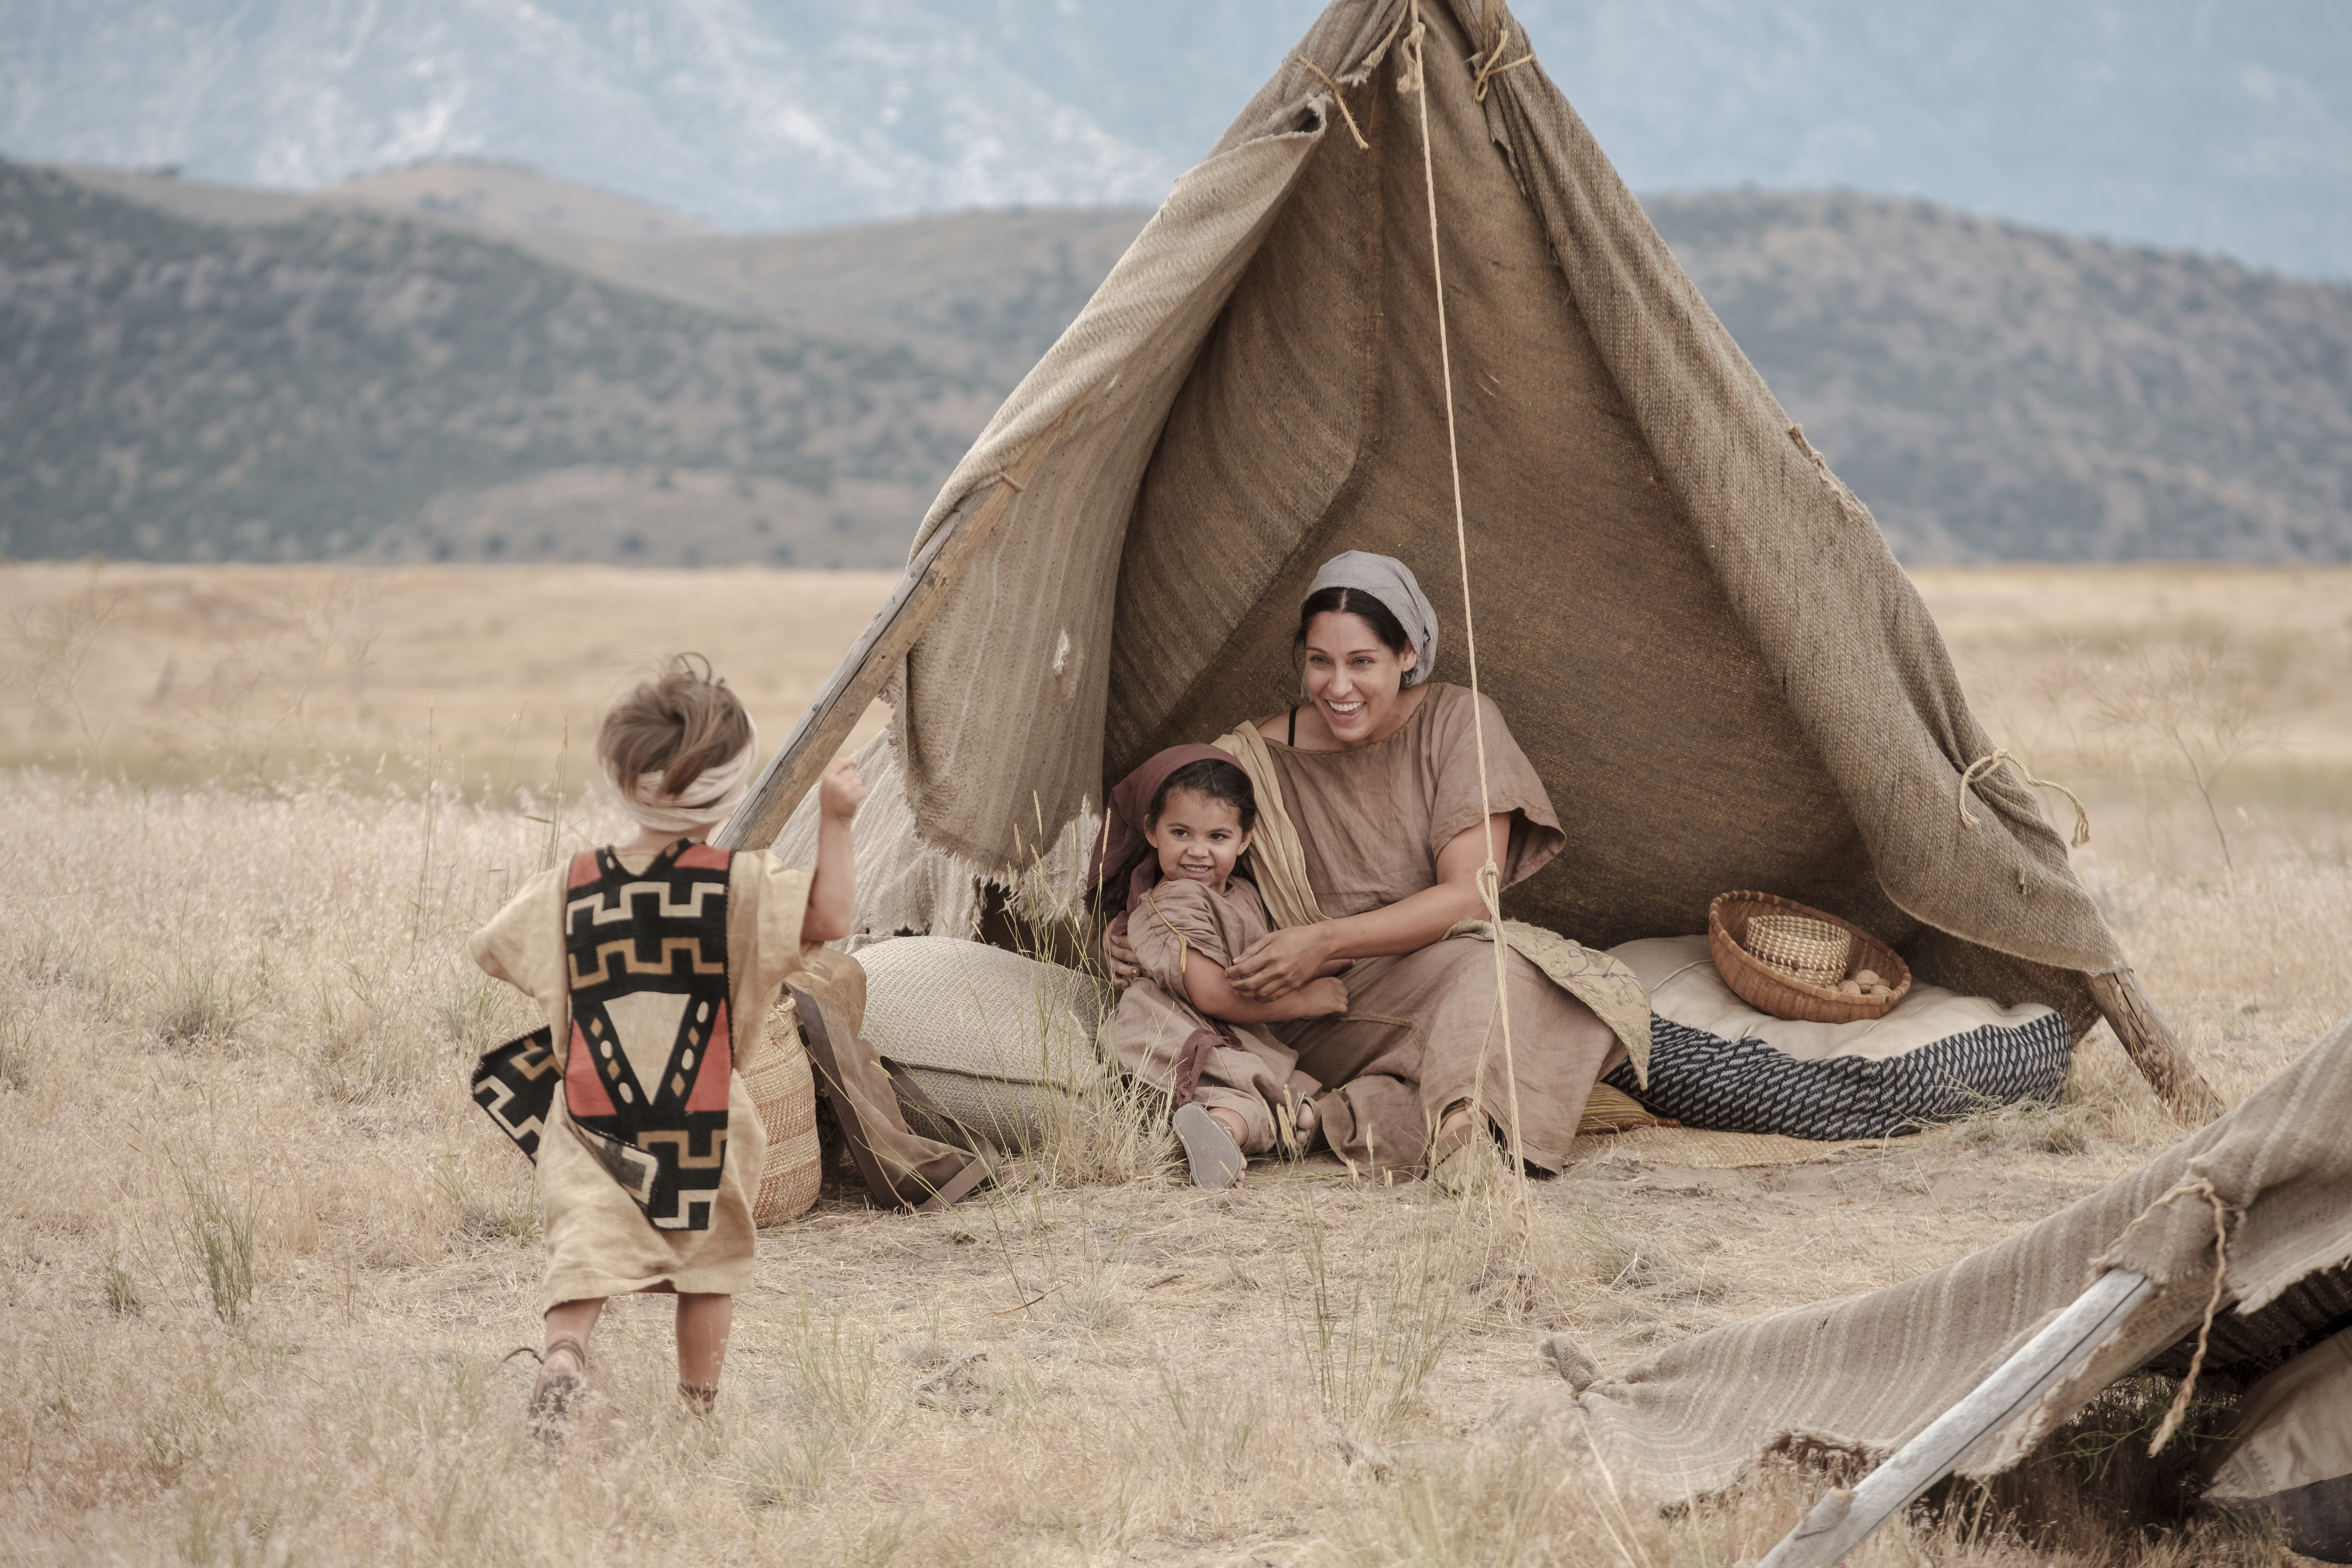 A daughter of Ishmael plays with children in the wilderness.